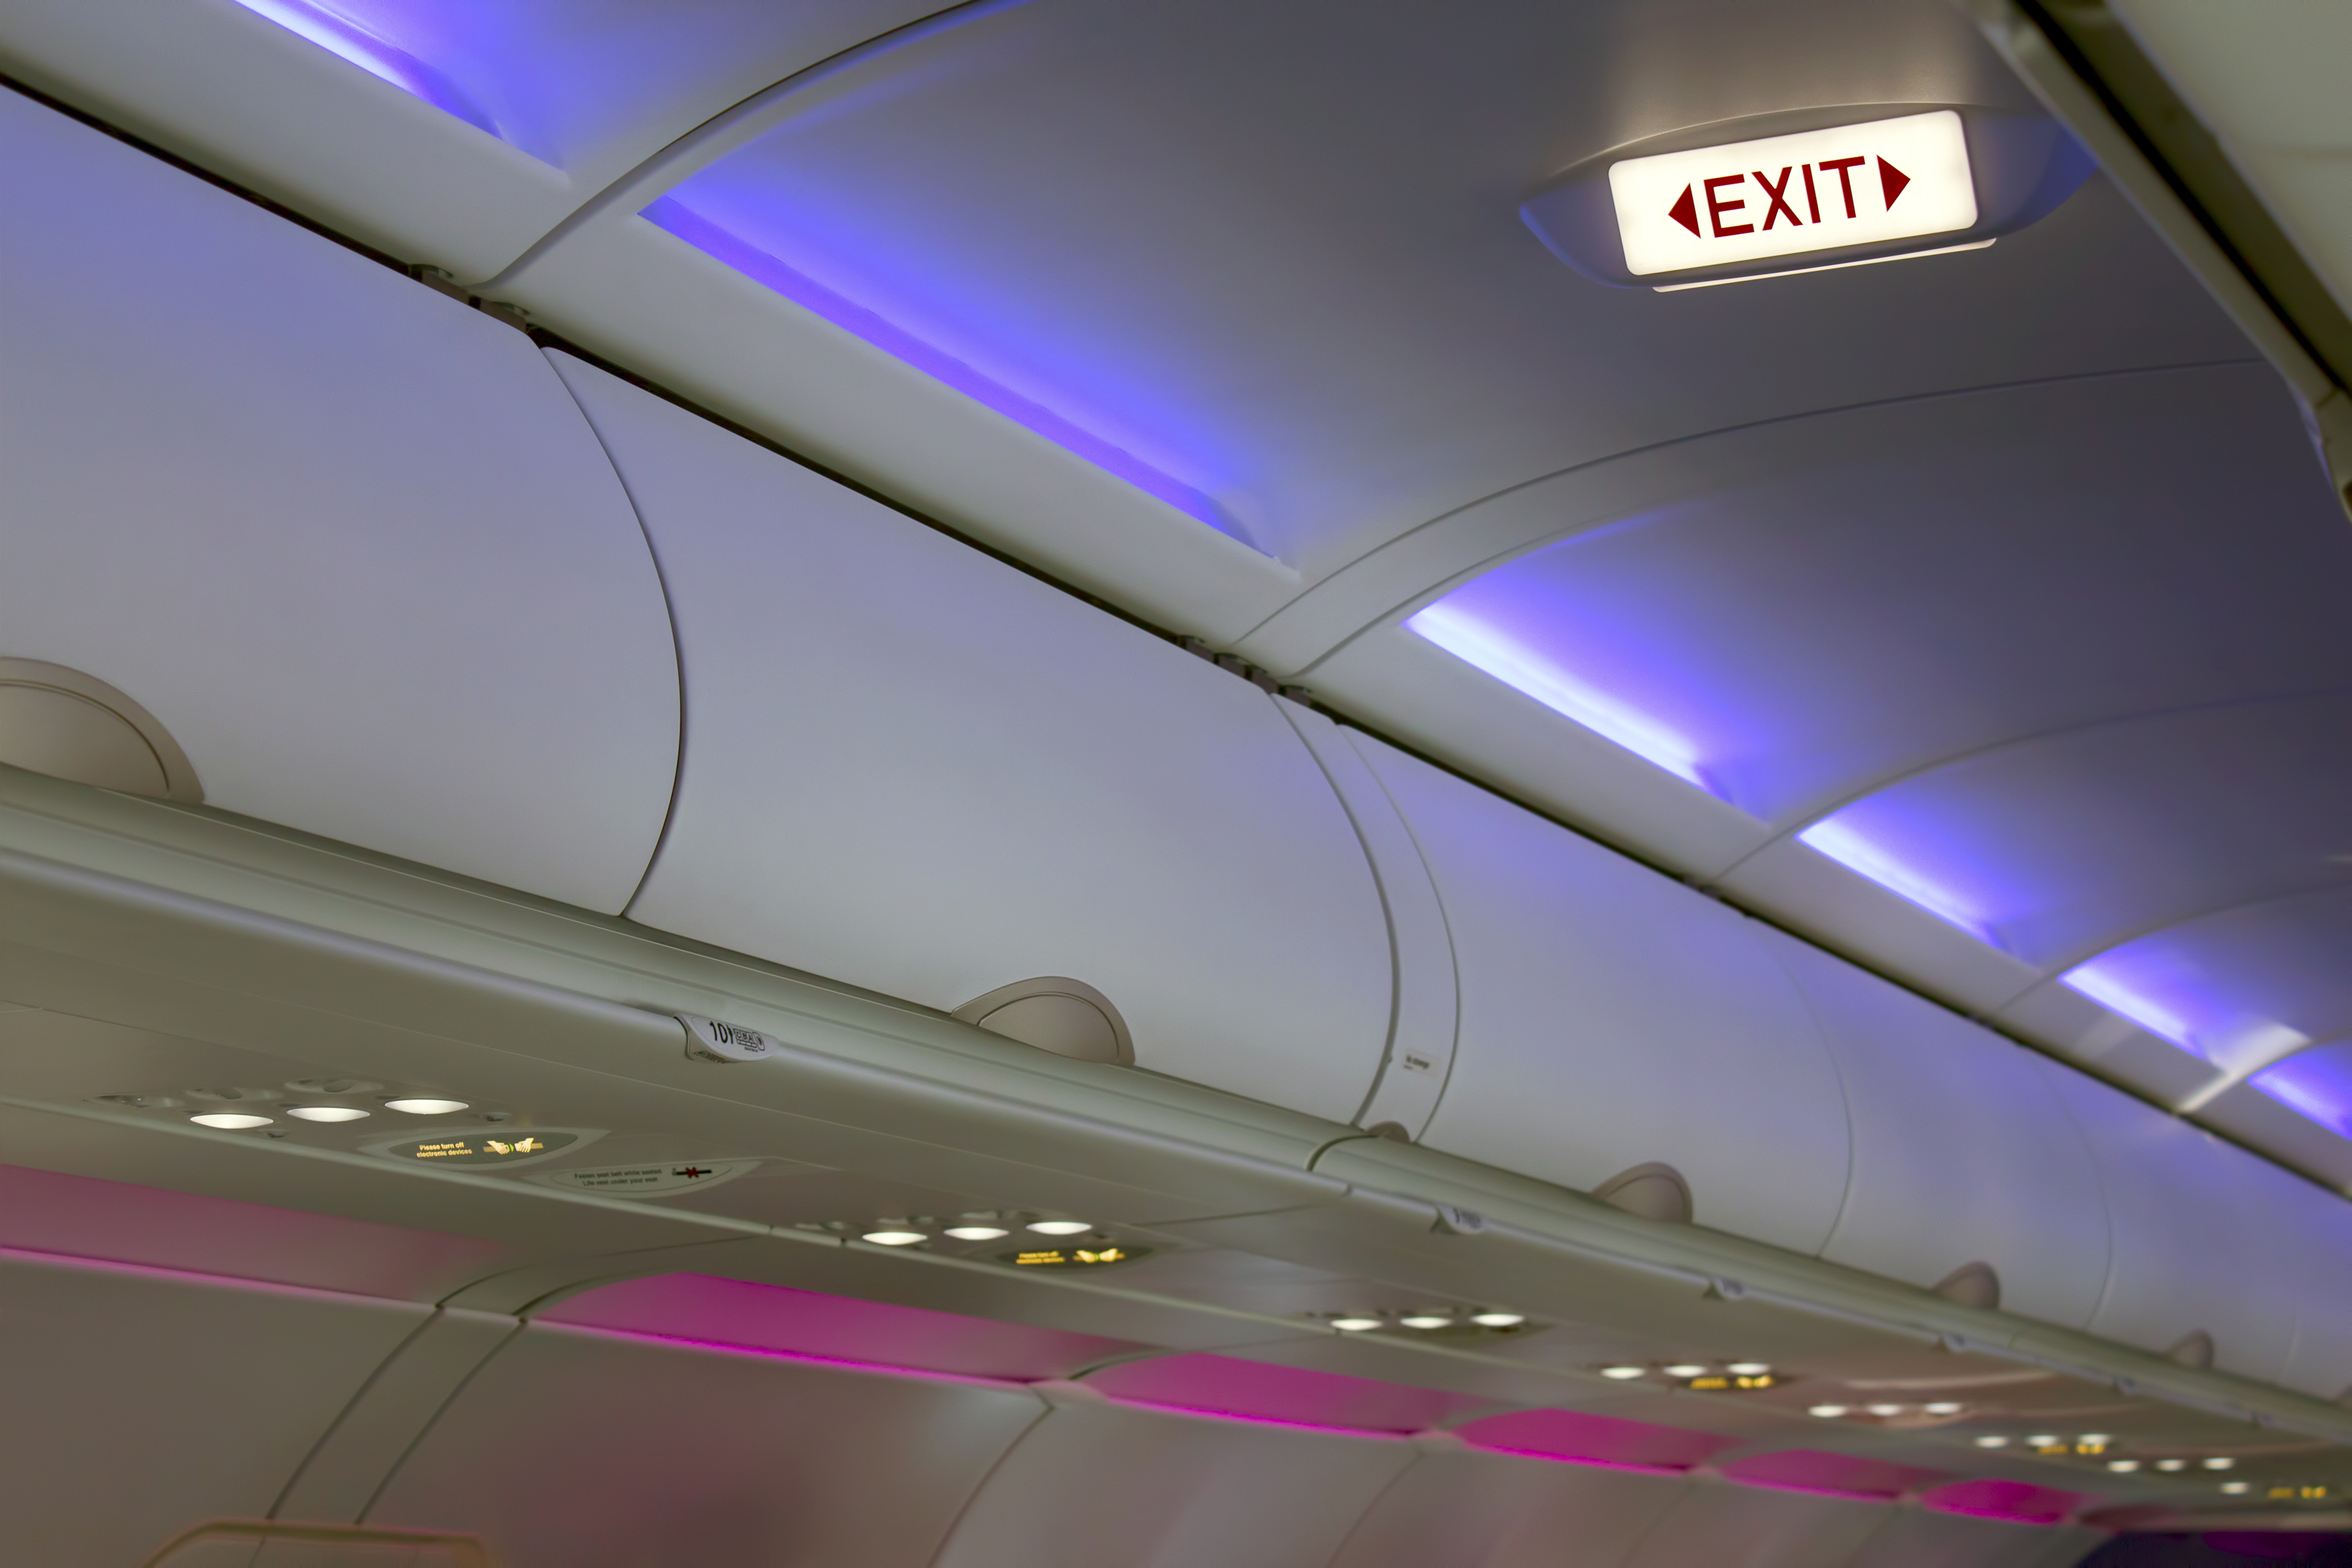 Airplane interior lighting and signs